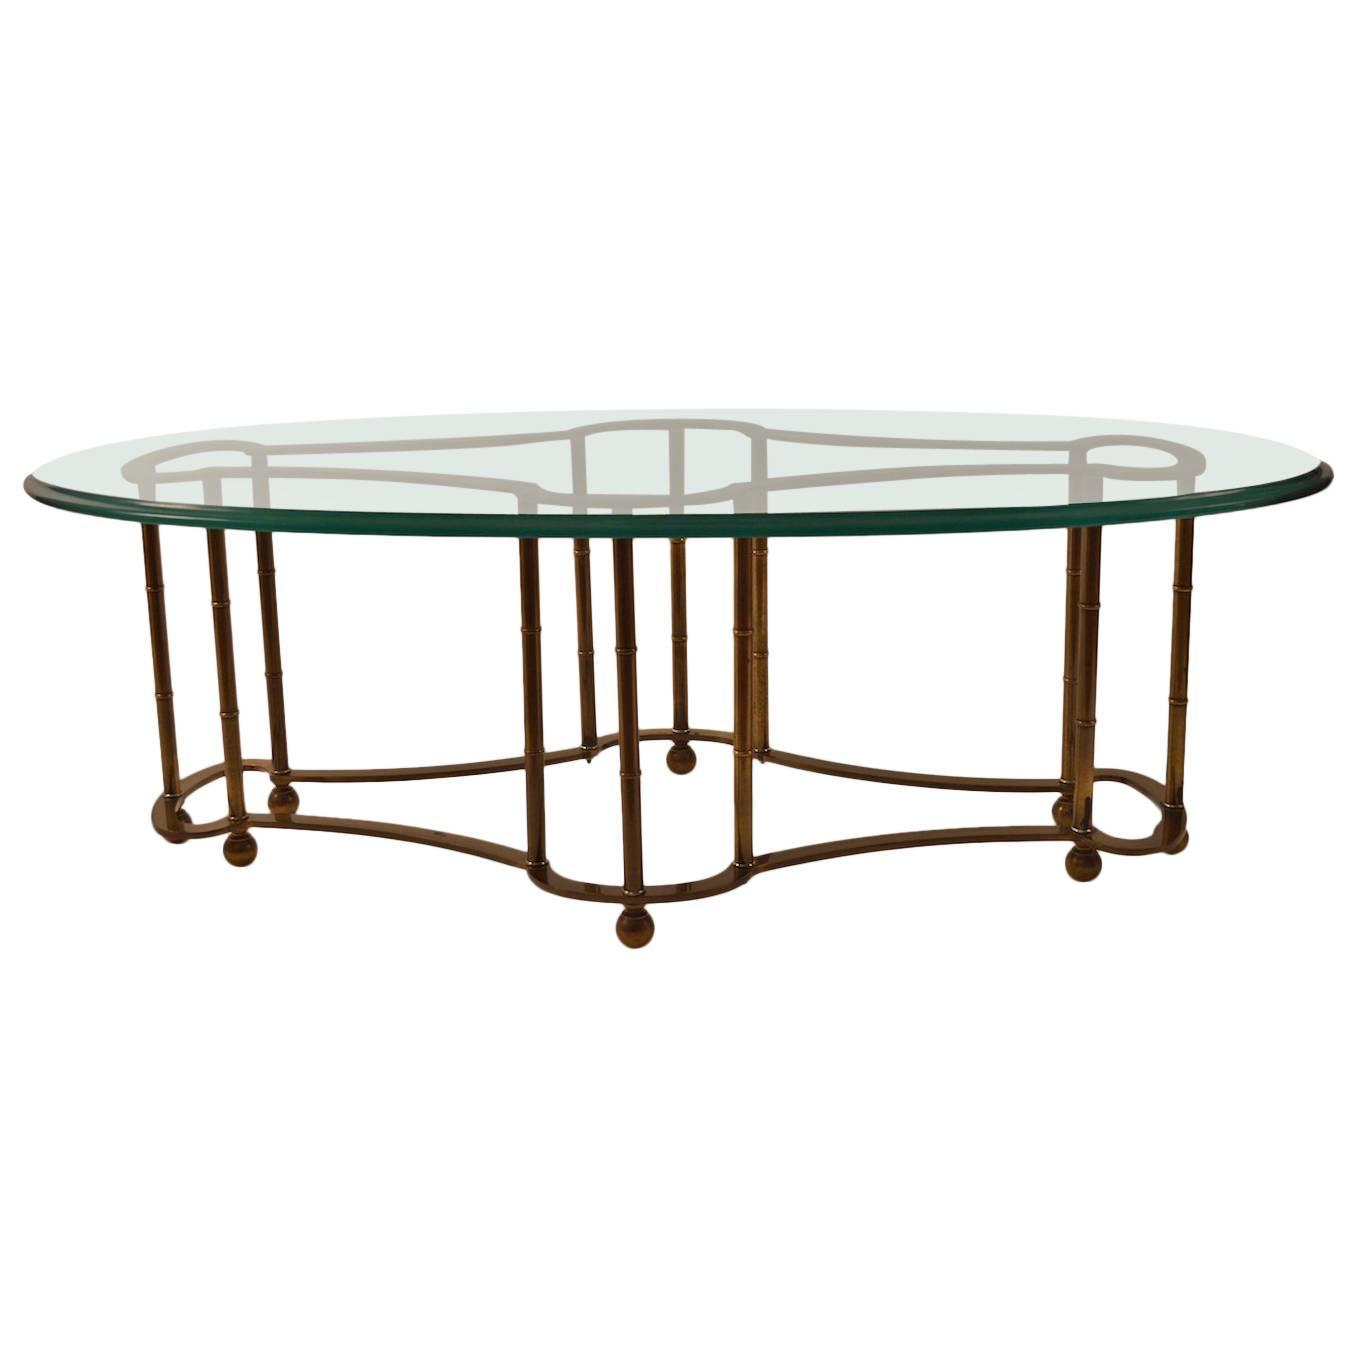 Glass Coffee Table Brass Base: Mastercraft Coffee Table Glass Top Brass Base For Sale At